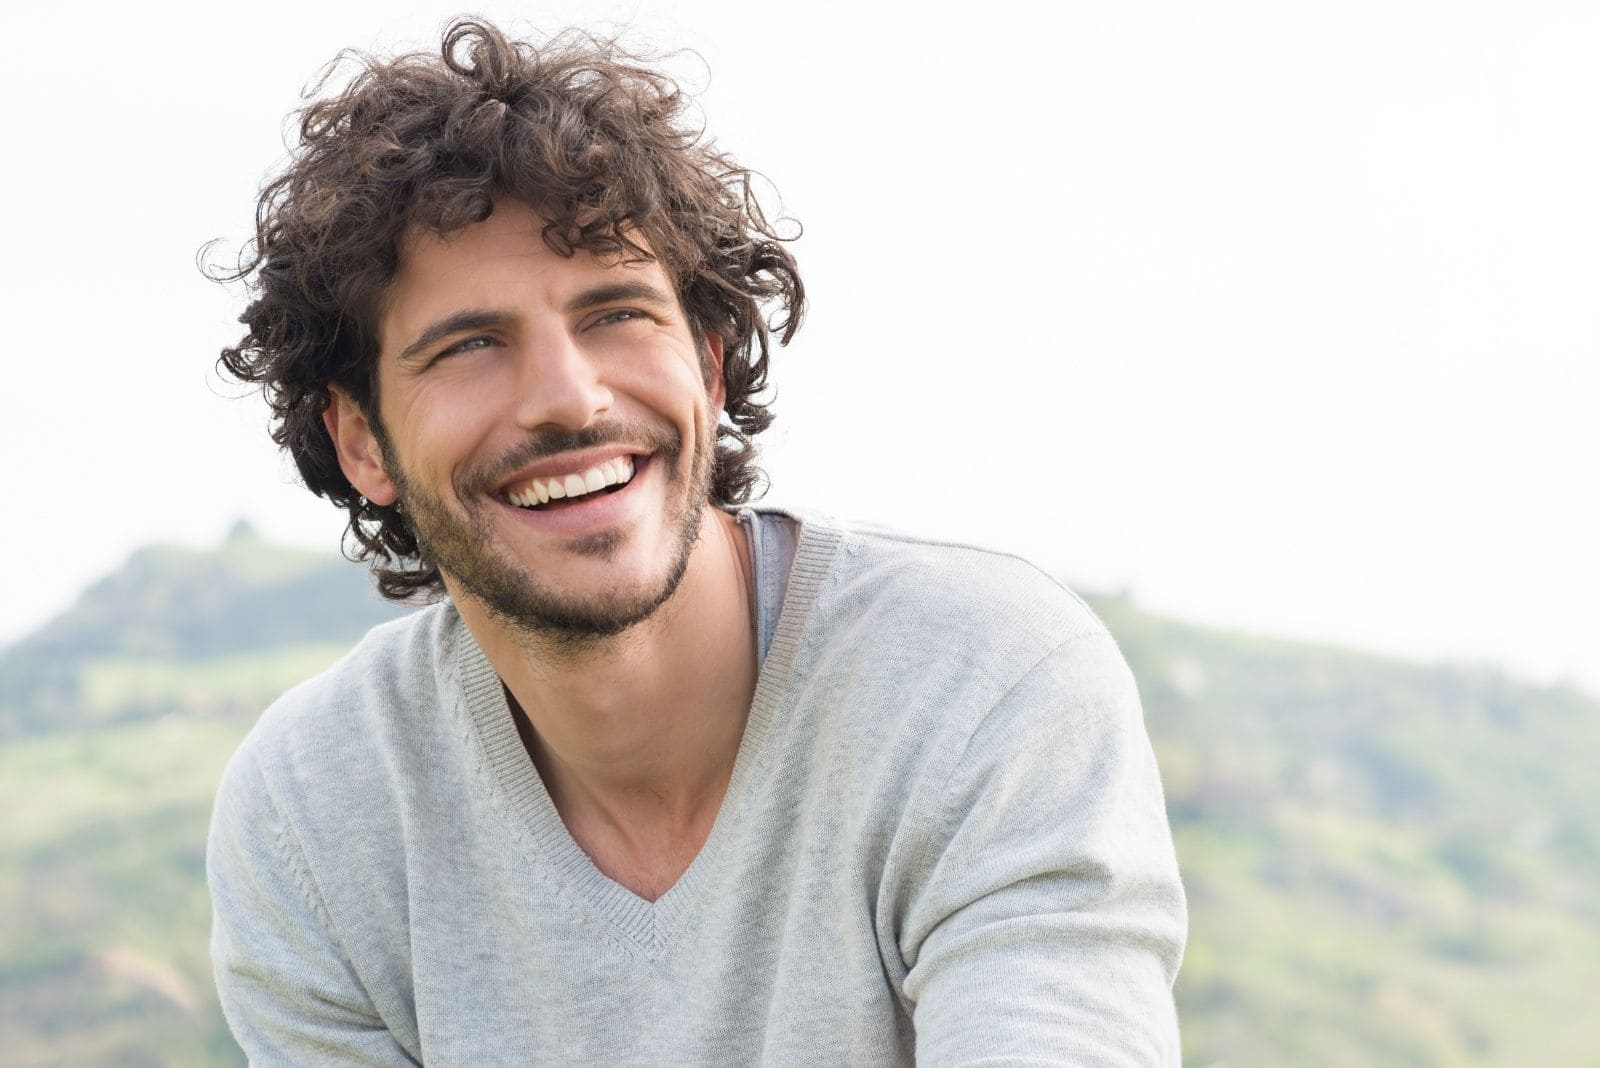 portrait of a happy man with curly hair sitting outdoors and smiling